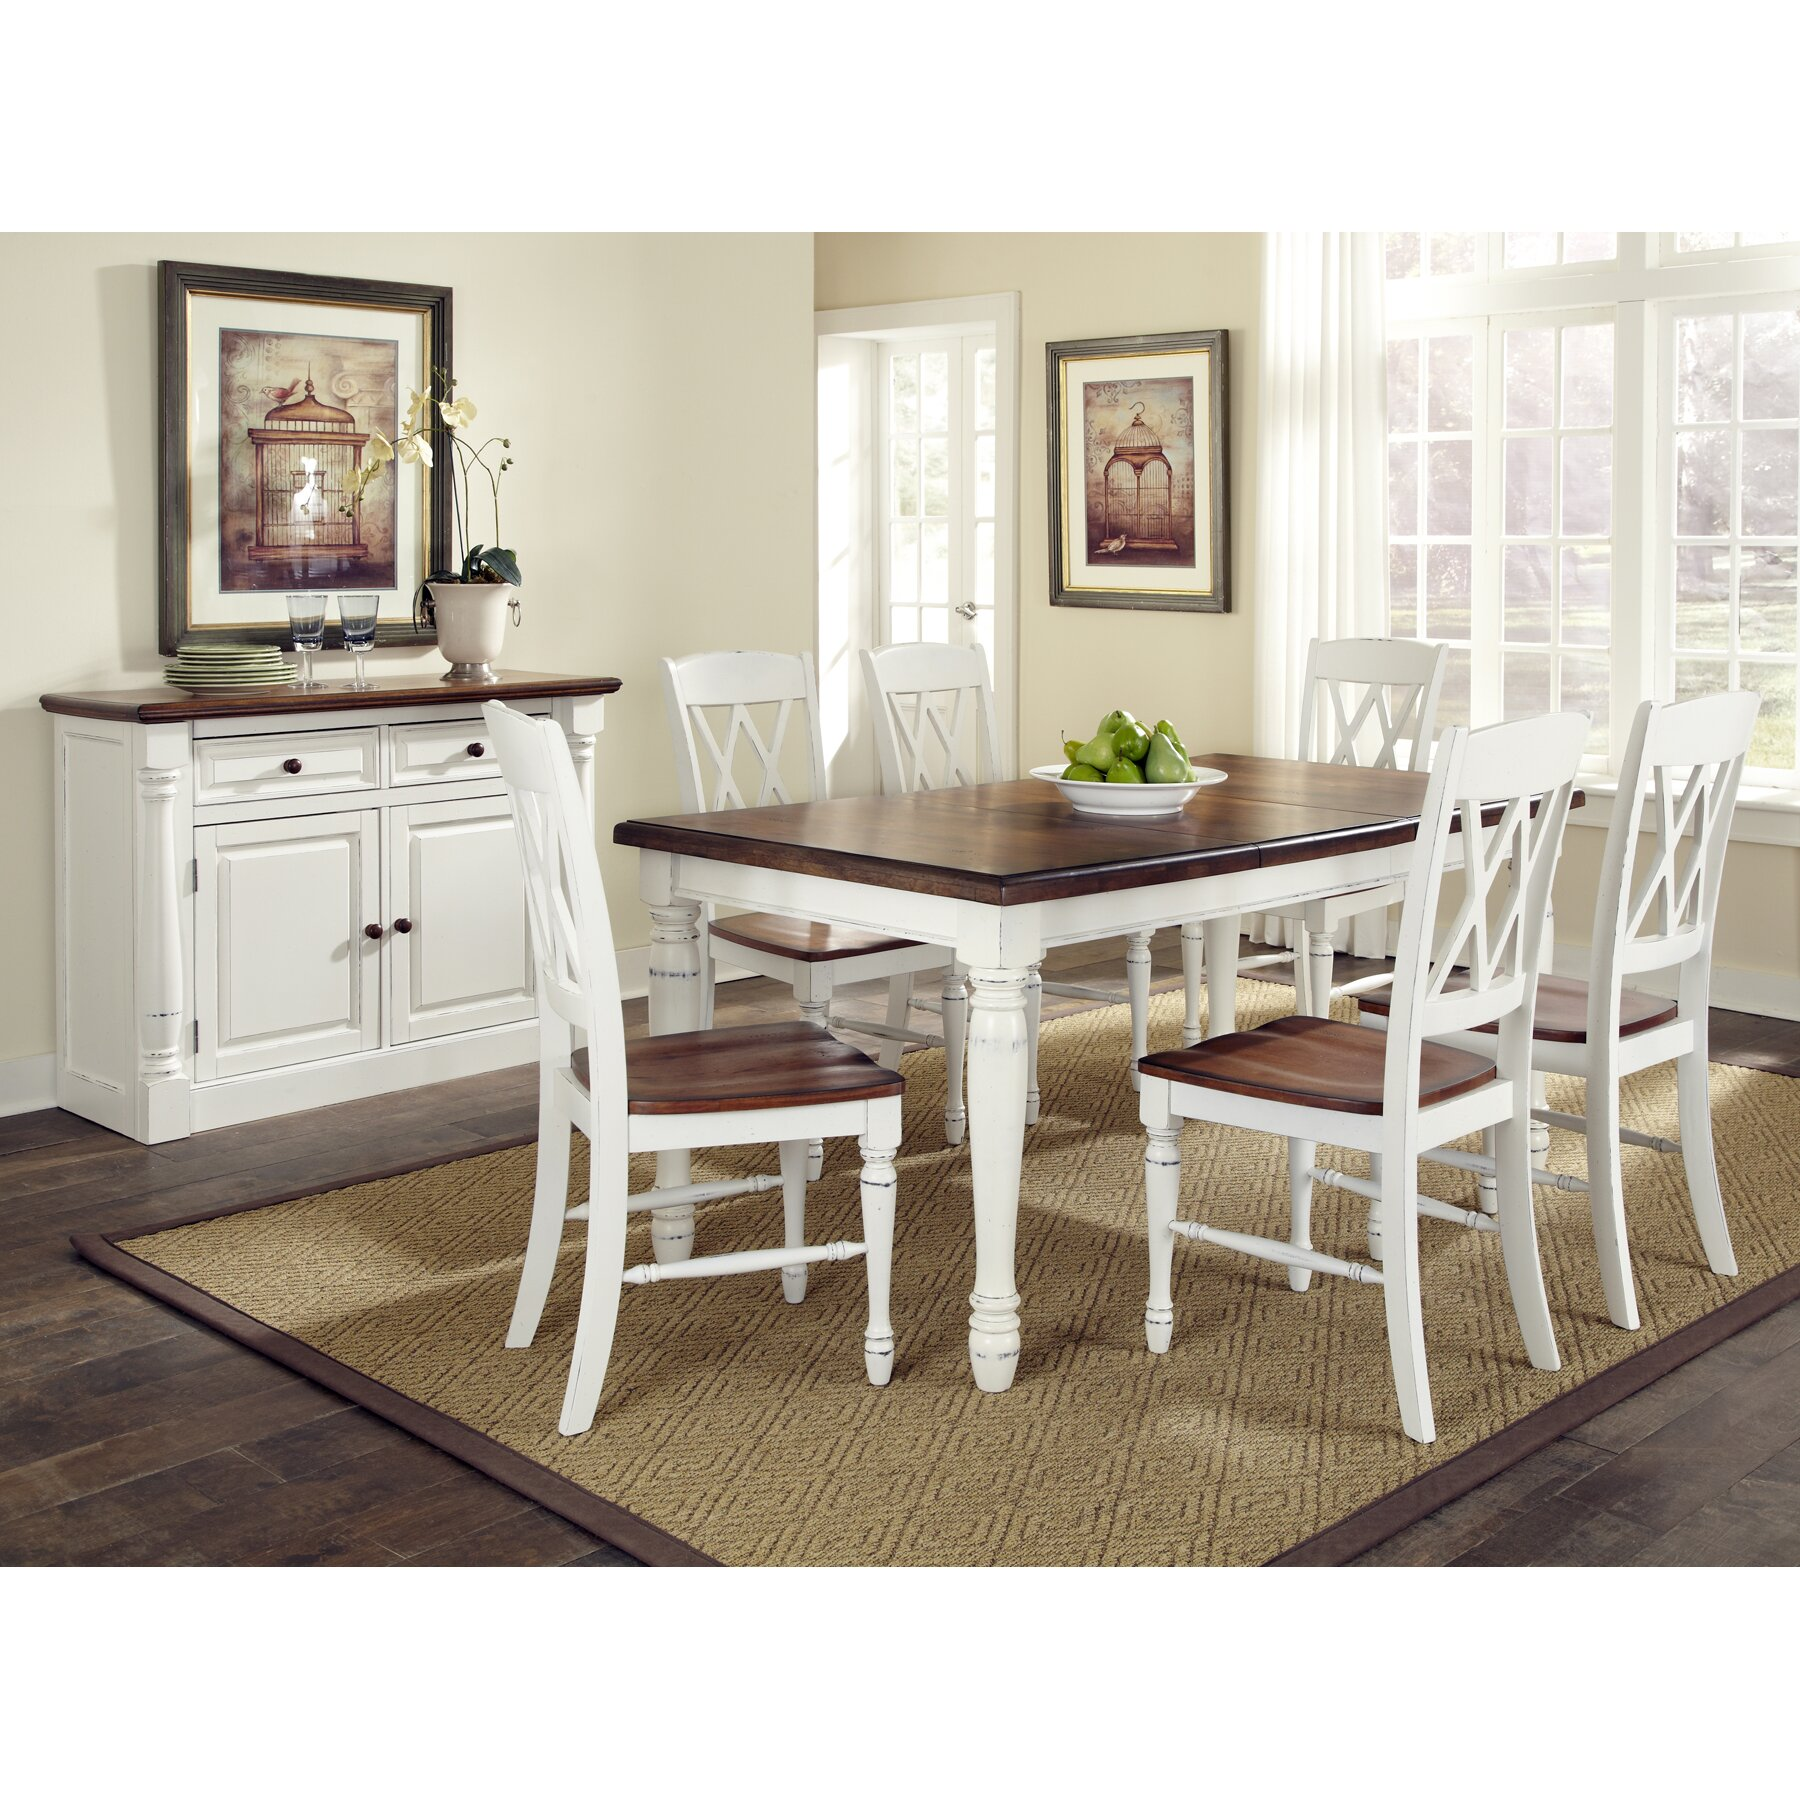 White Tables And Chairs: August Grove Shyanne 7 Piece Dining Set & Reviews